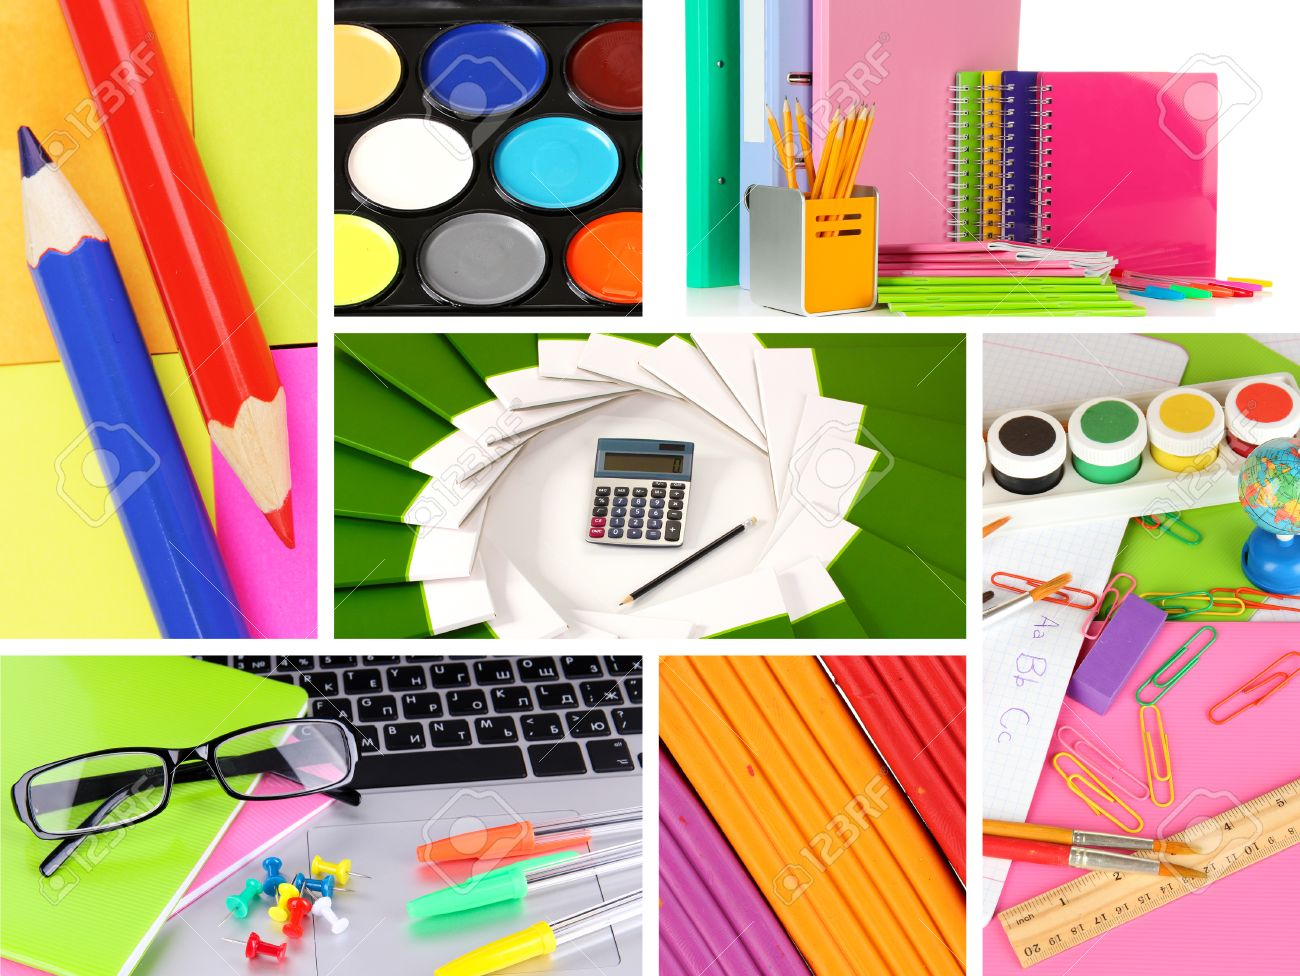 Image result for collage images for school